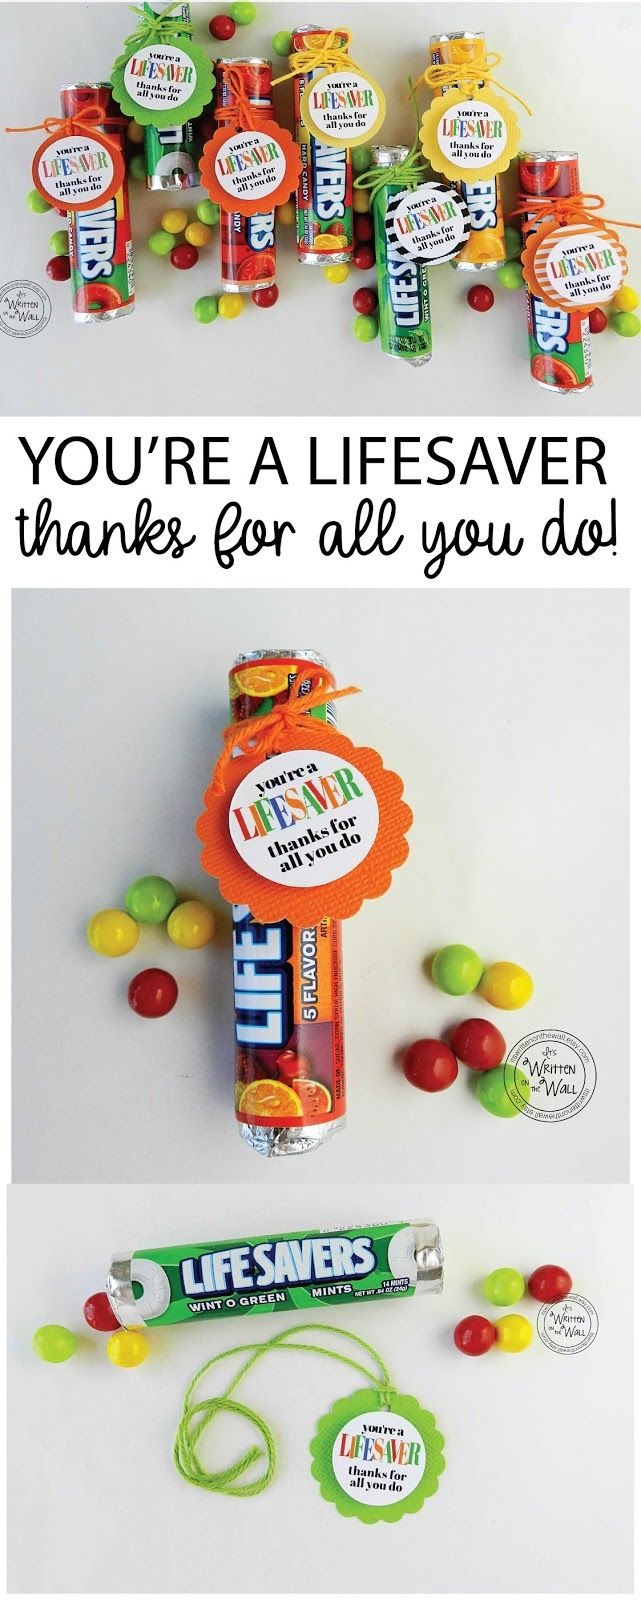 You're a LIFESAVER—Thanks For All You Do! Employee Appreciation, Co-Worker Gifts and More #employeeappreciationideas